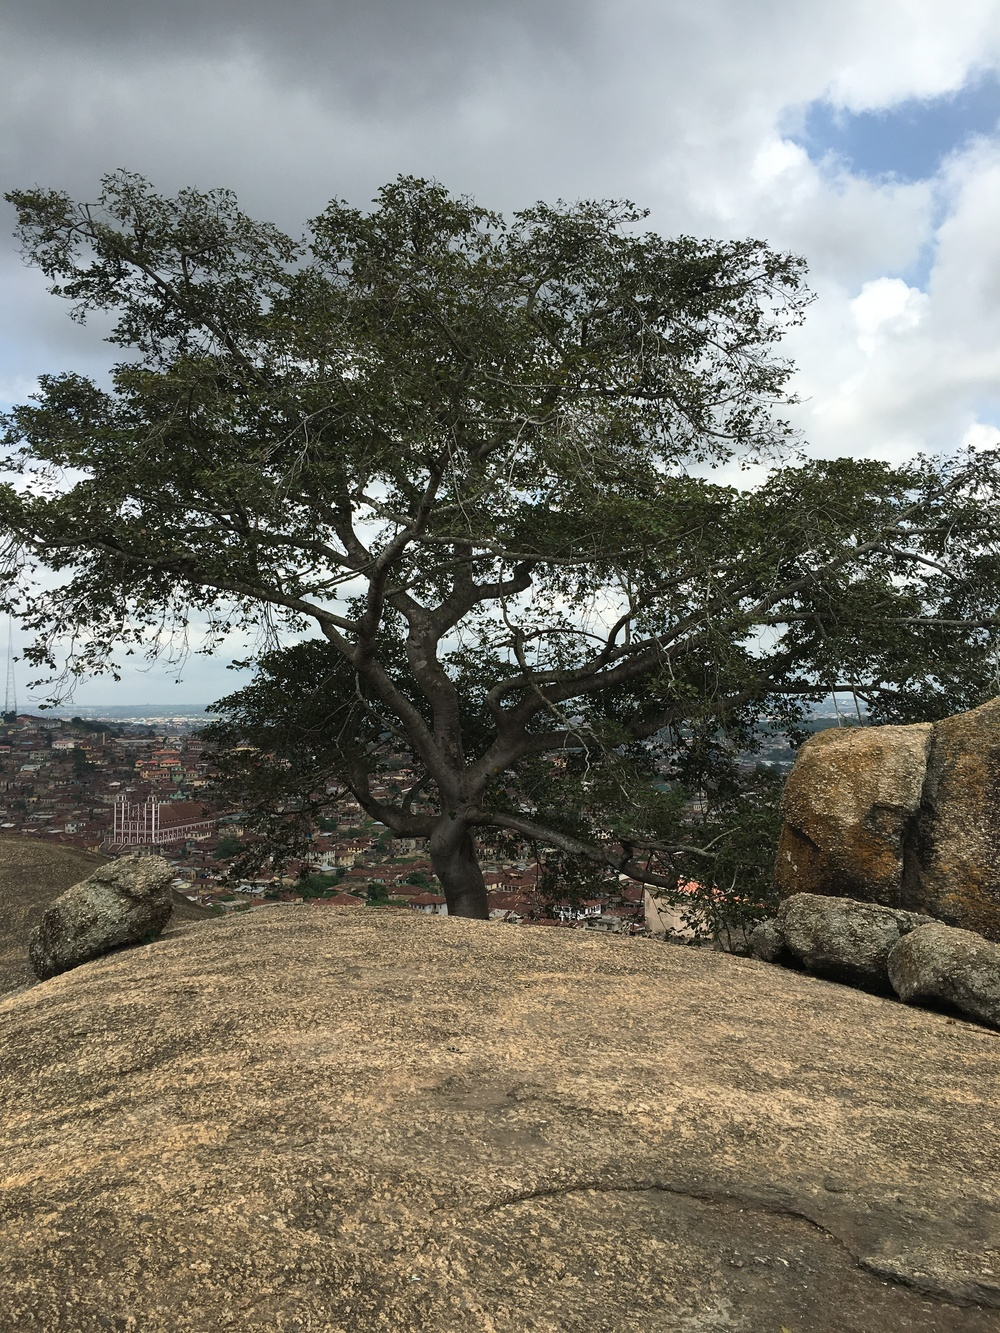 From the top, you can see this Iroko Tree, which they say is over 200 years old and never sheds its leaves - come rain or shine!